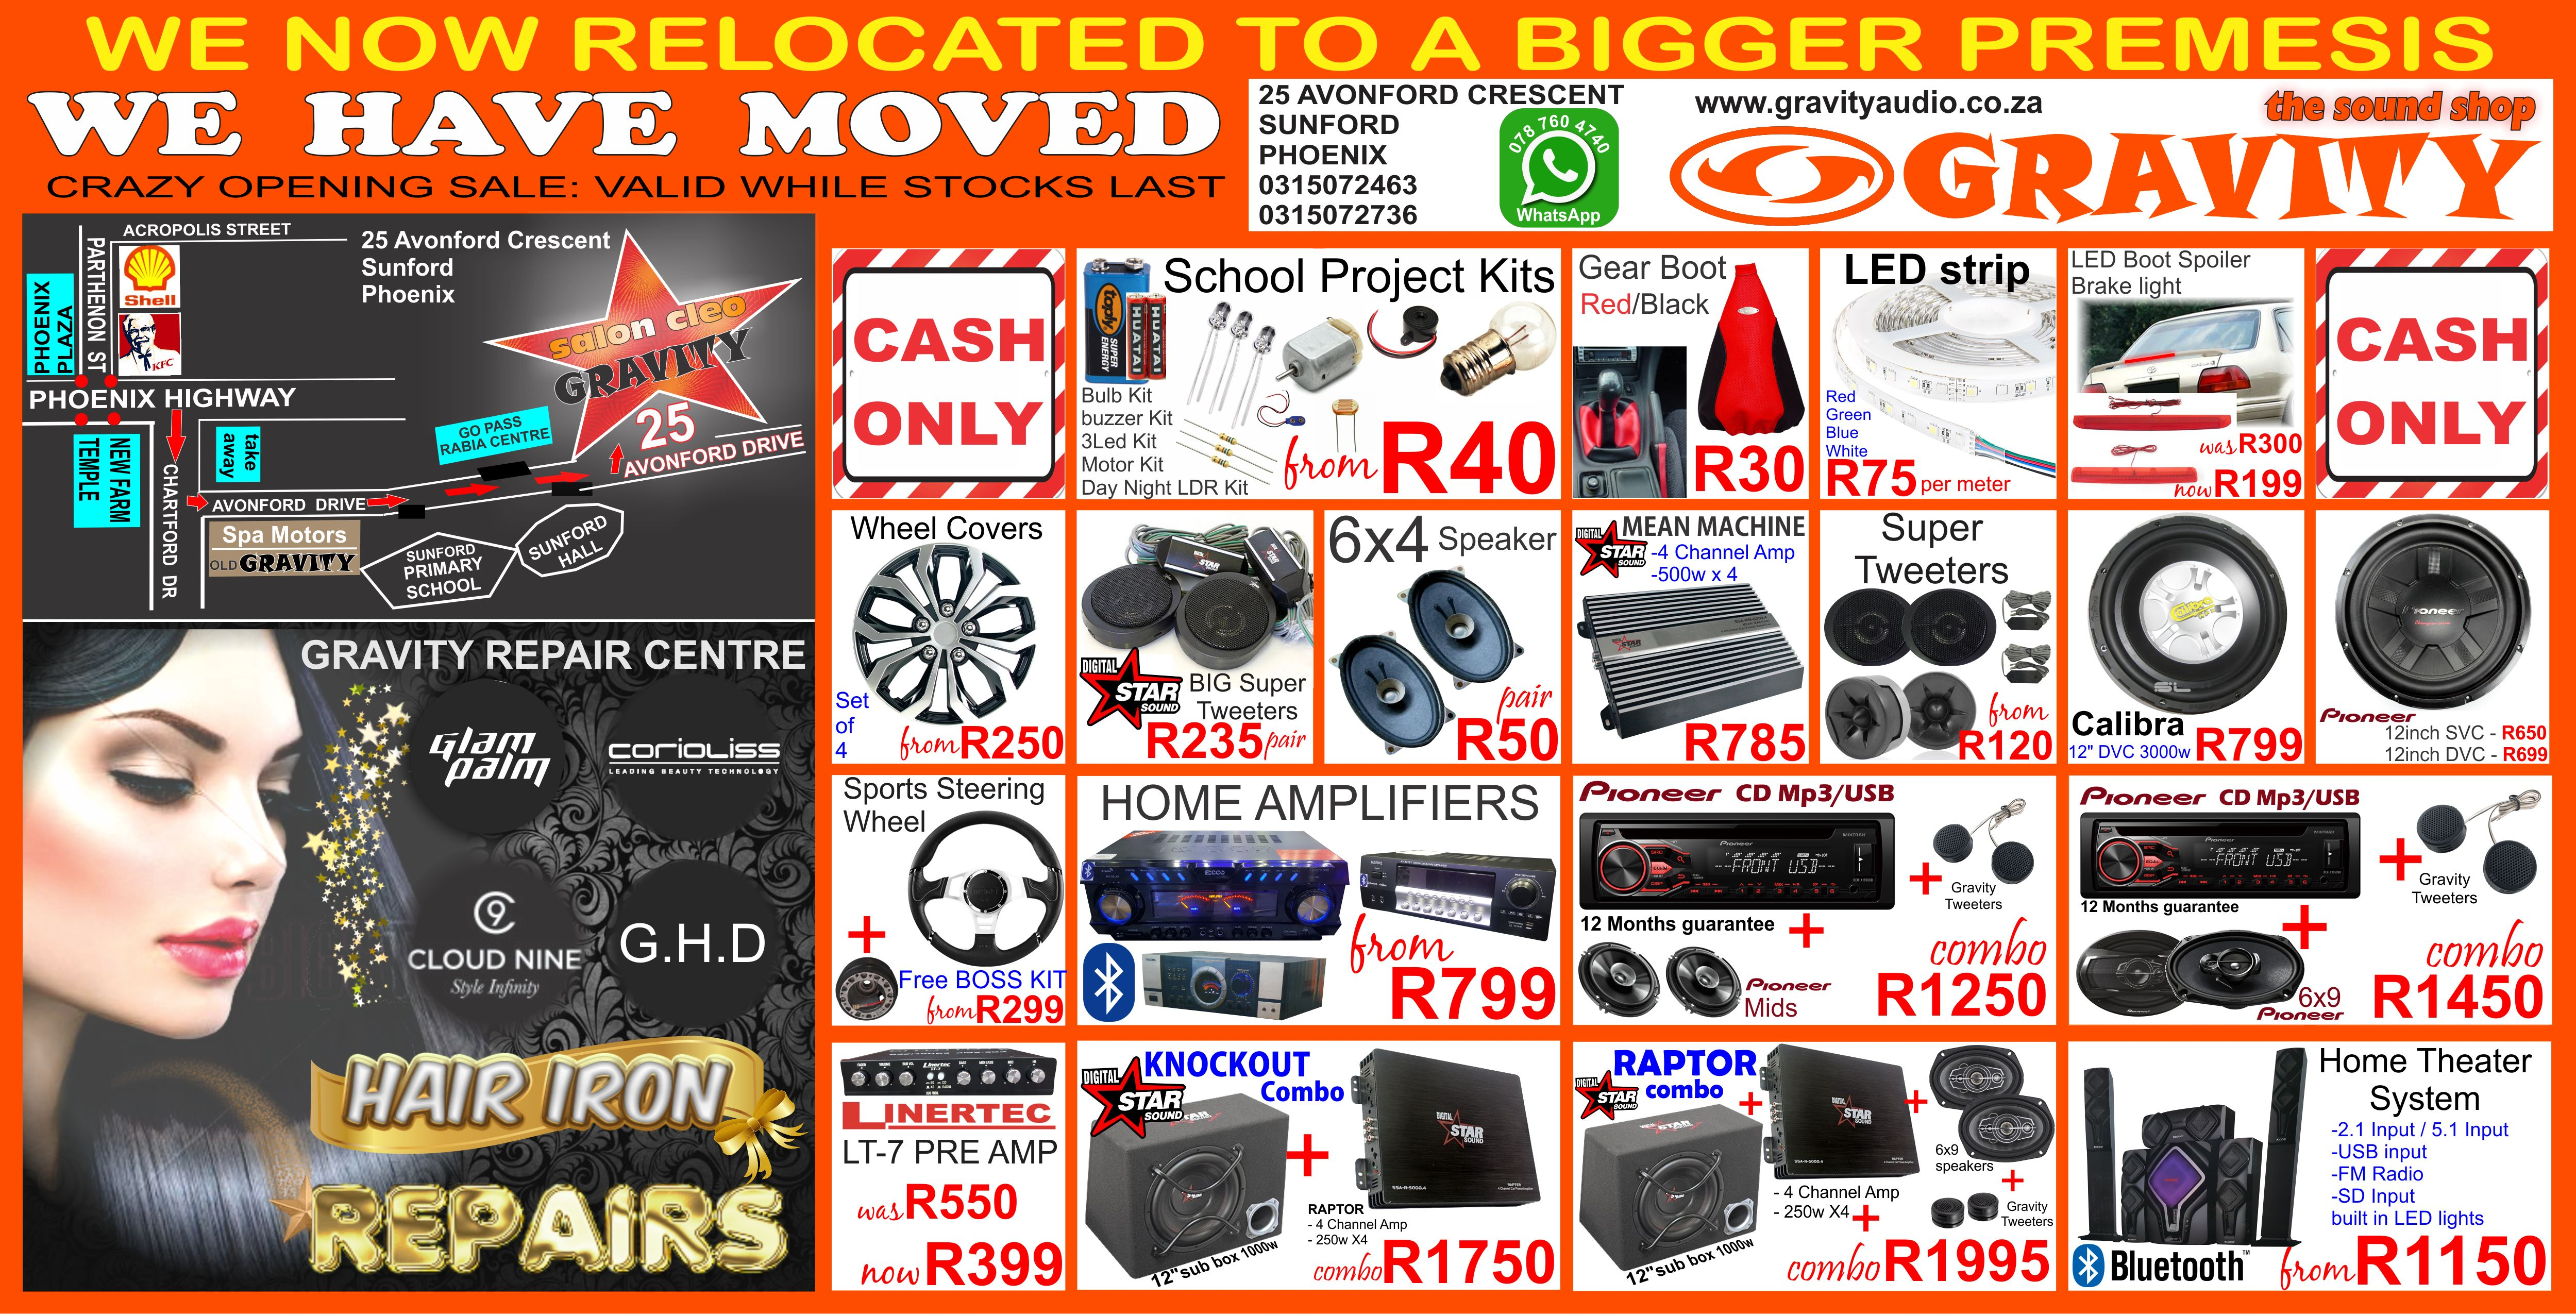 multimedia sound dj car combos car sound combos selfie sticks car garmen holder usb sticks memory cards gravity sound and lighting warehouse durban 0787604740 dj equipment home theater sytems 5.1 speakers wireless keyboards wireless mouse for computer fishing light battery downlight bulbs home downlight bulbs aux cable car mats set of 4 car accessories only at gravity sound and lighting warehouse durban phoenix